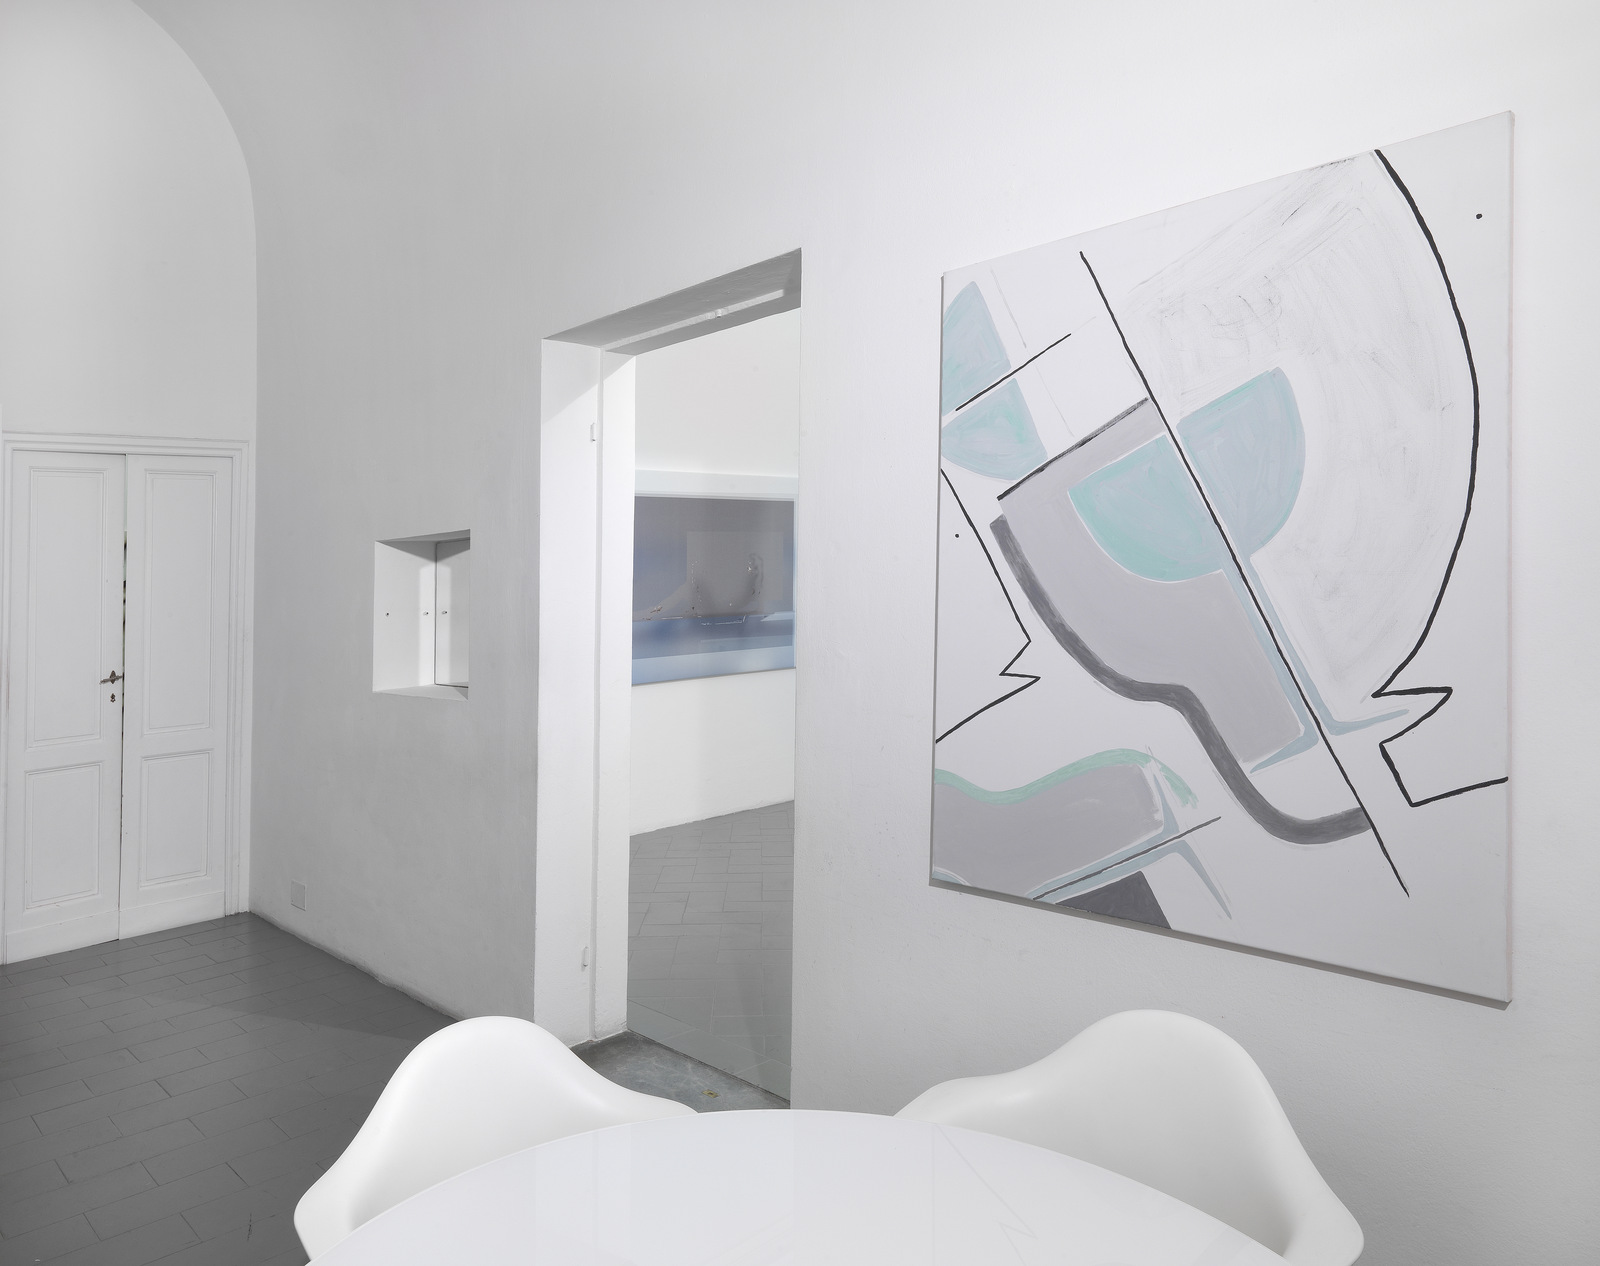 9.Installation View. Joshua Citarella, Zoe de Soumagnat. Courtesy of Eduardo Secci Contemporary